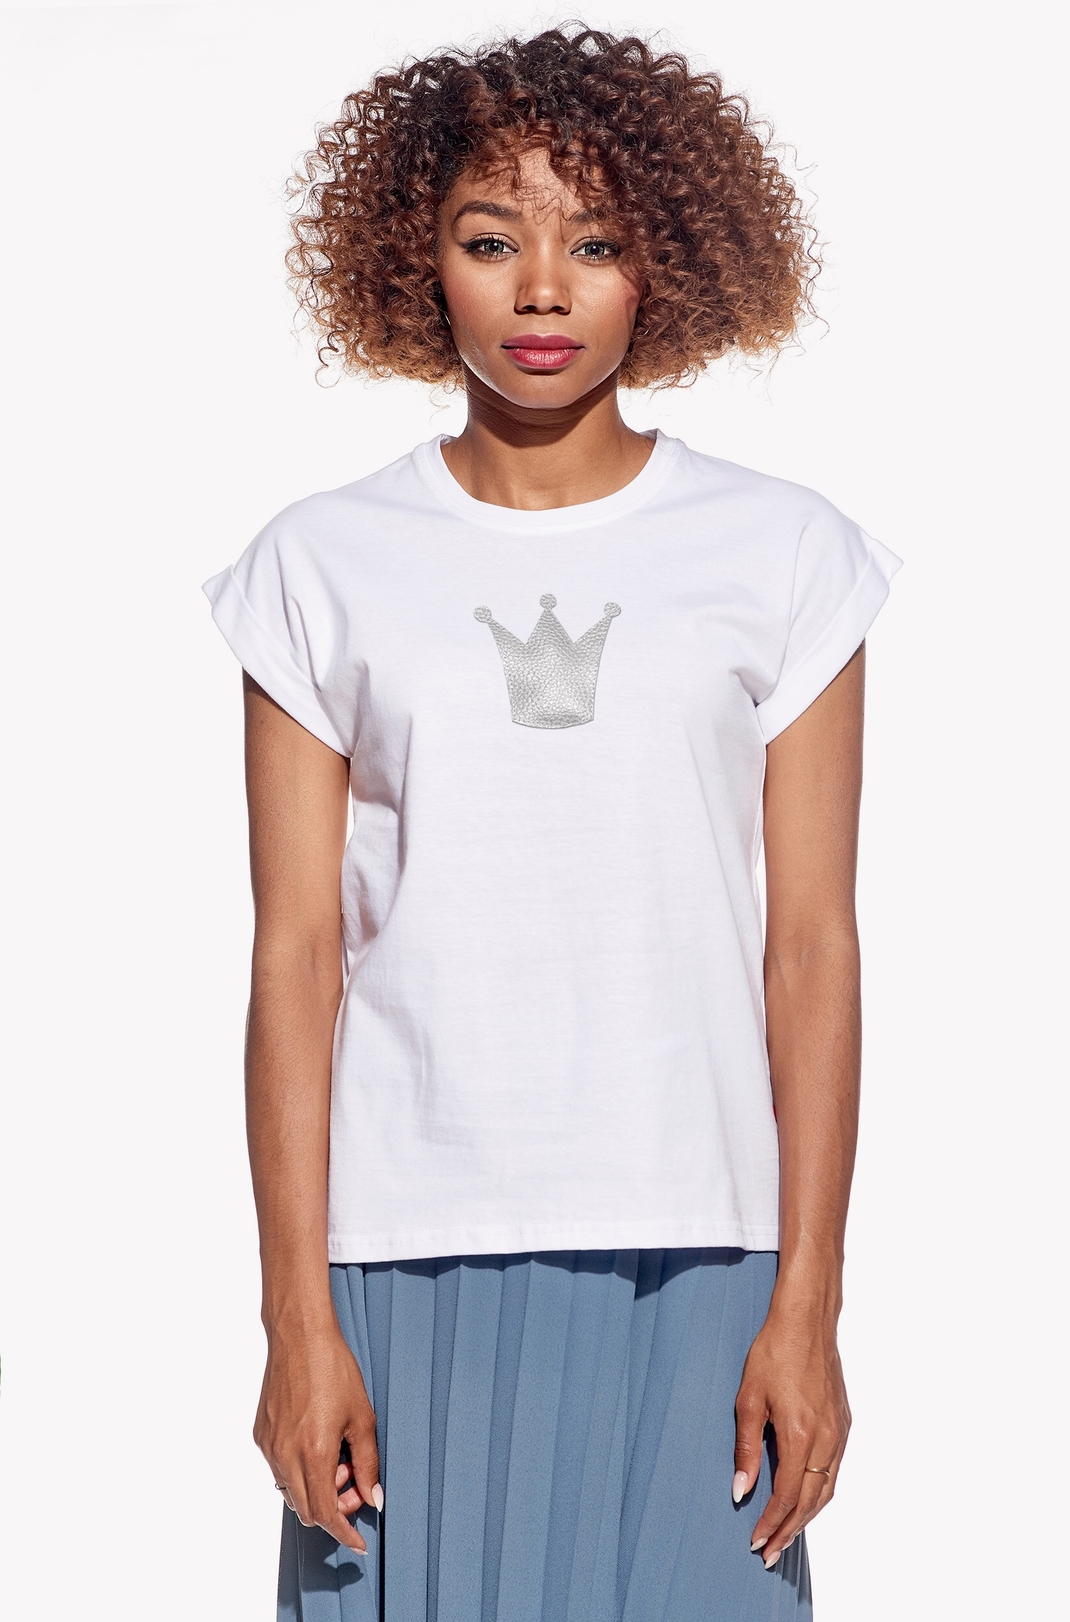 Shirt with crown